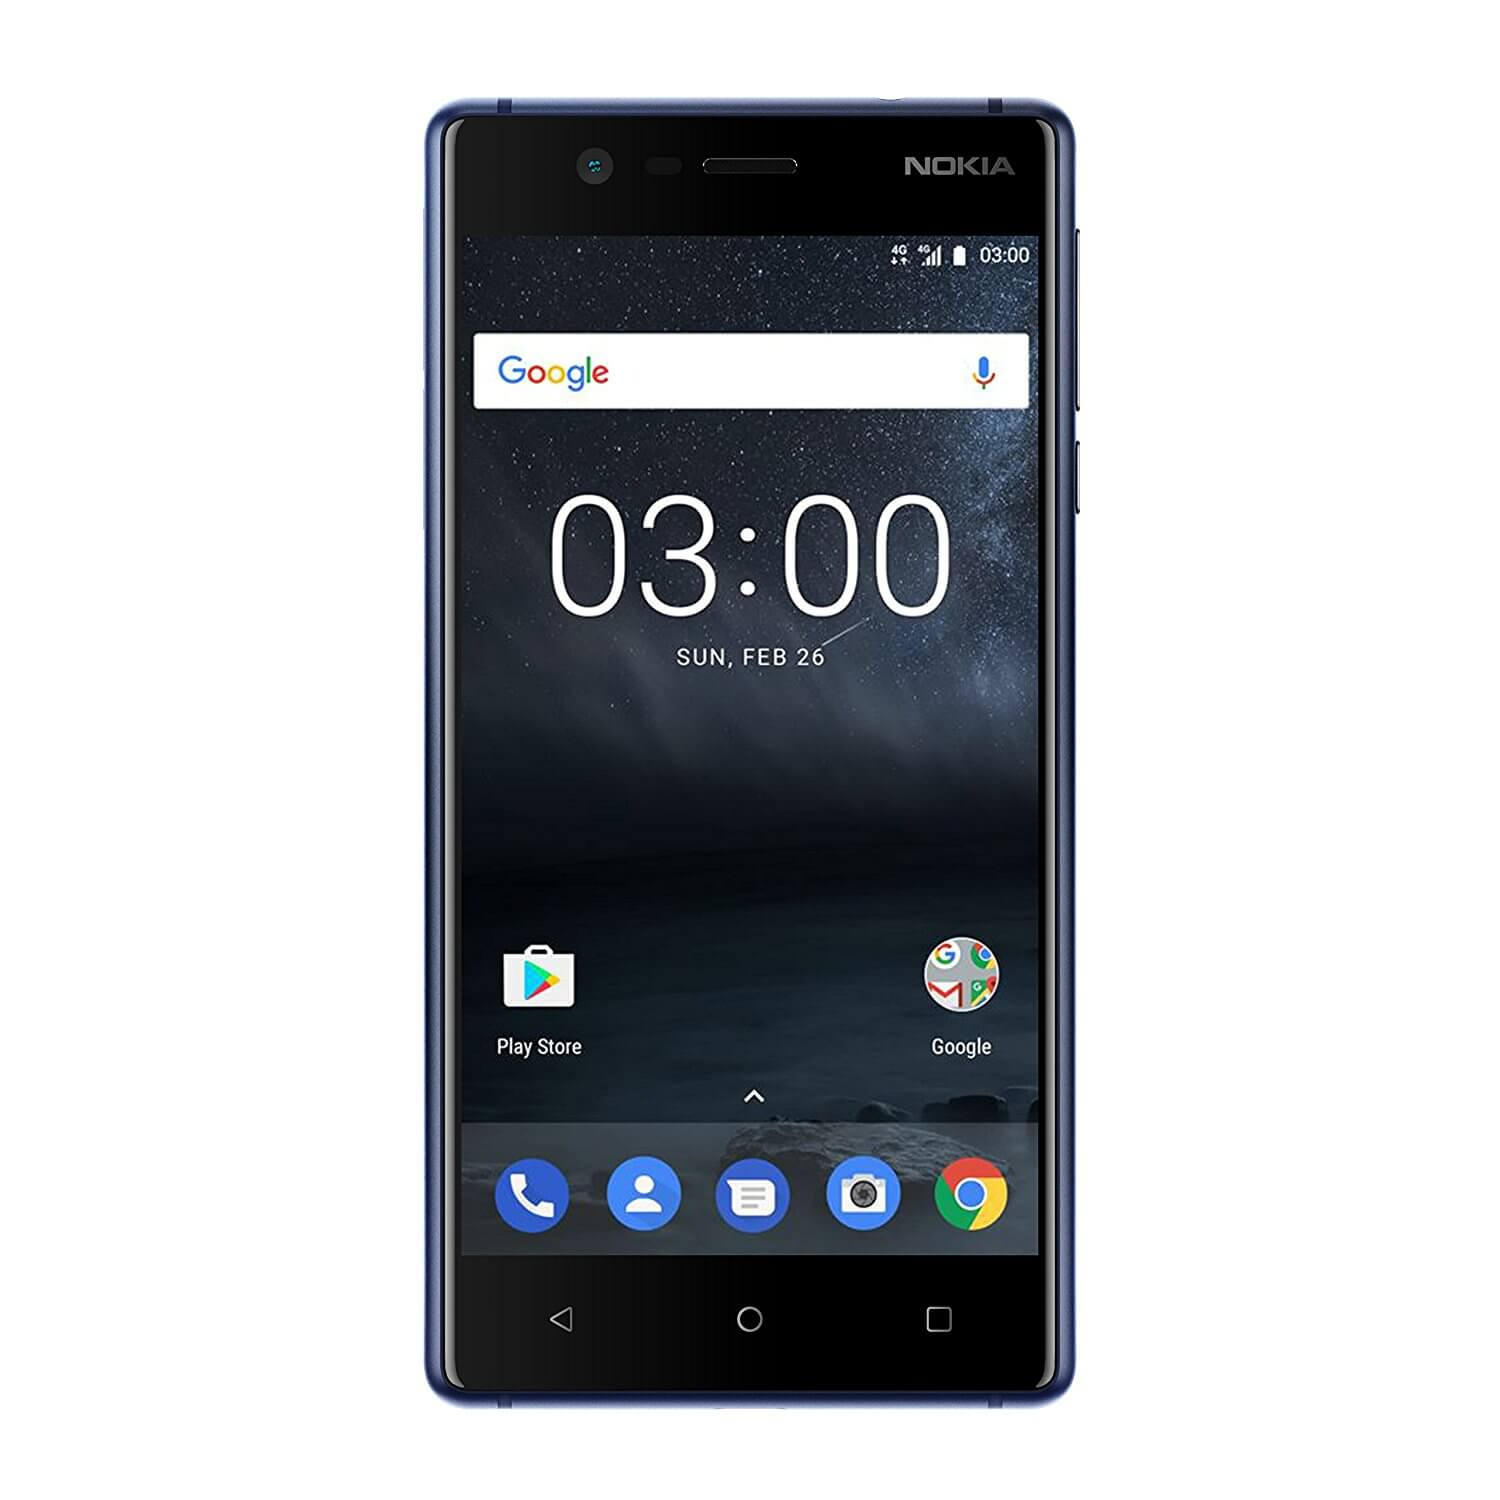 nokia 8 das high end smartphone mit android. Black Bedroom Furniture Sets. Home Design Ideas